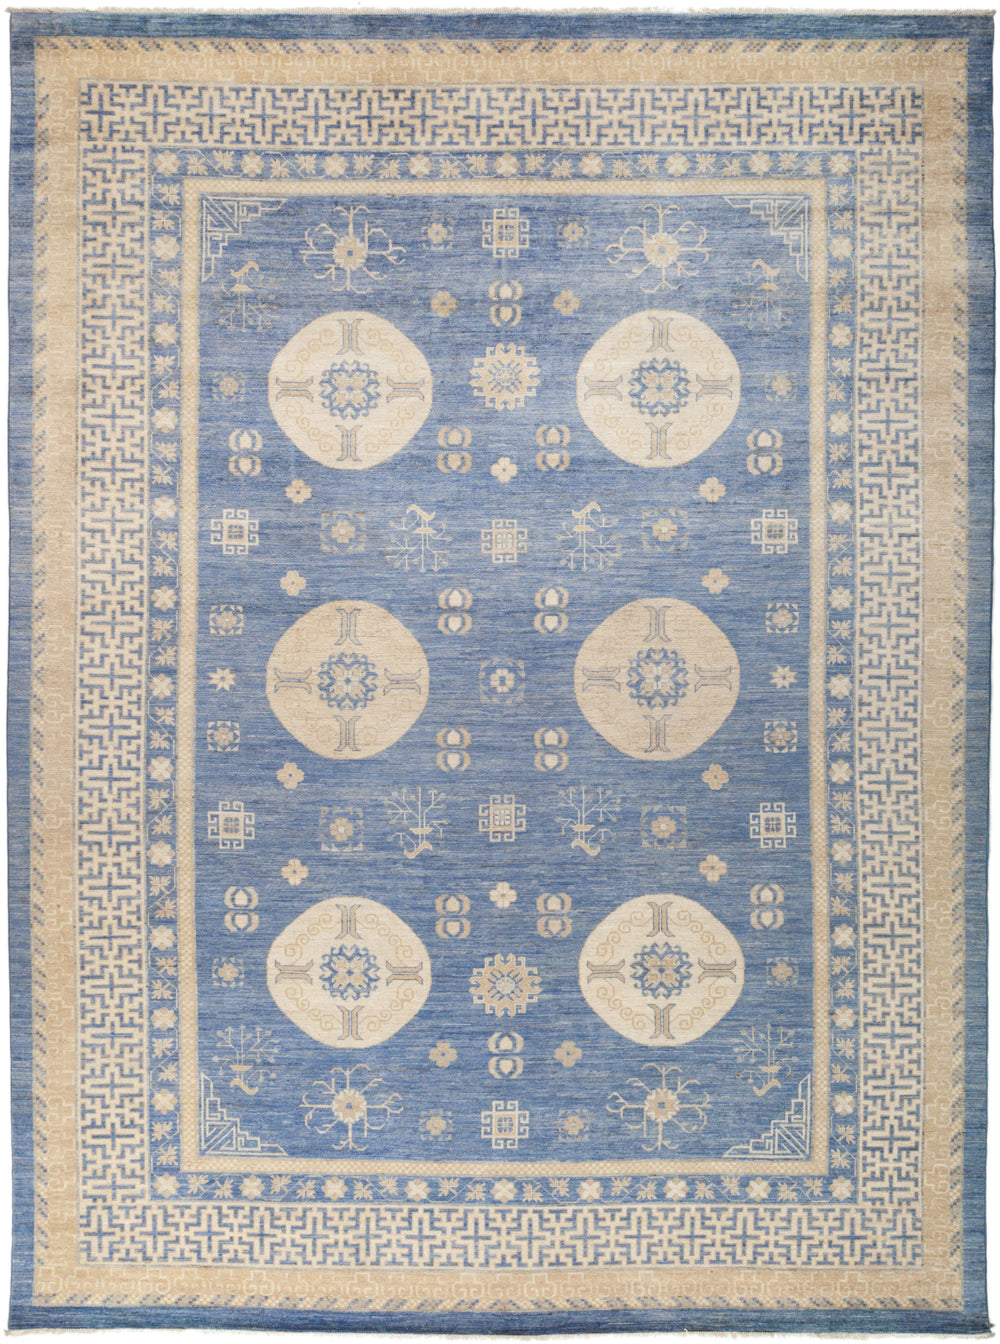 "Khotan, 10x14 Blue Wool Area Rug - 9' 10"" x 13' 2"""